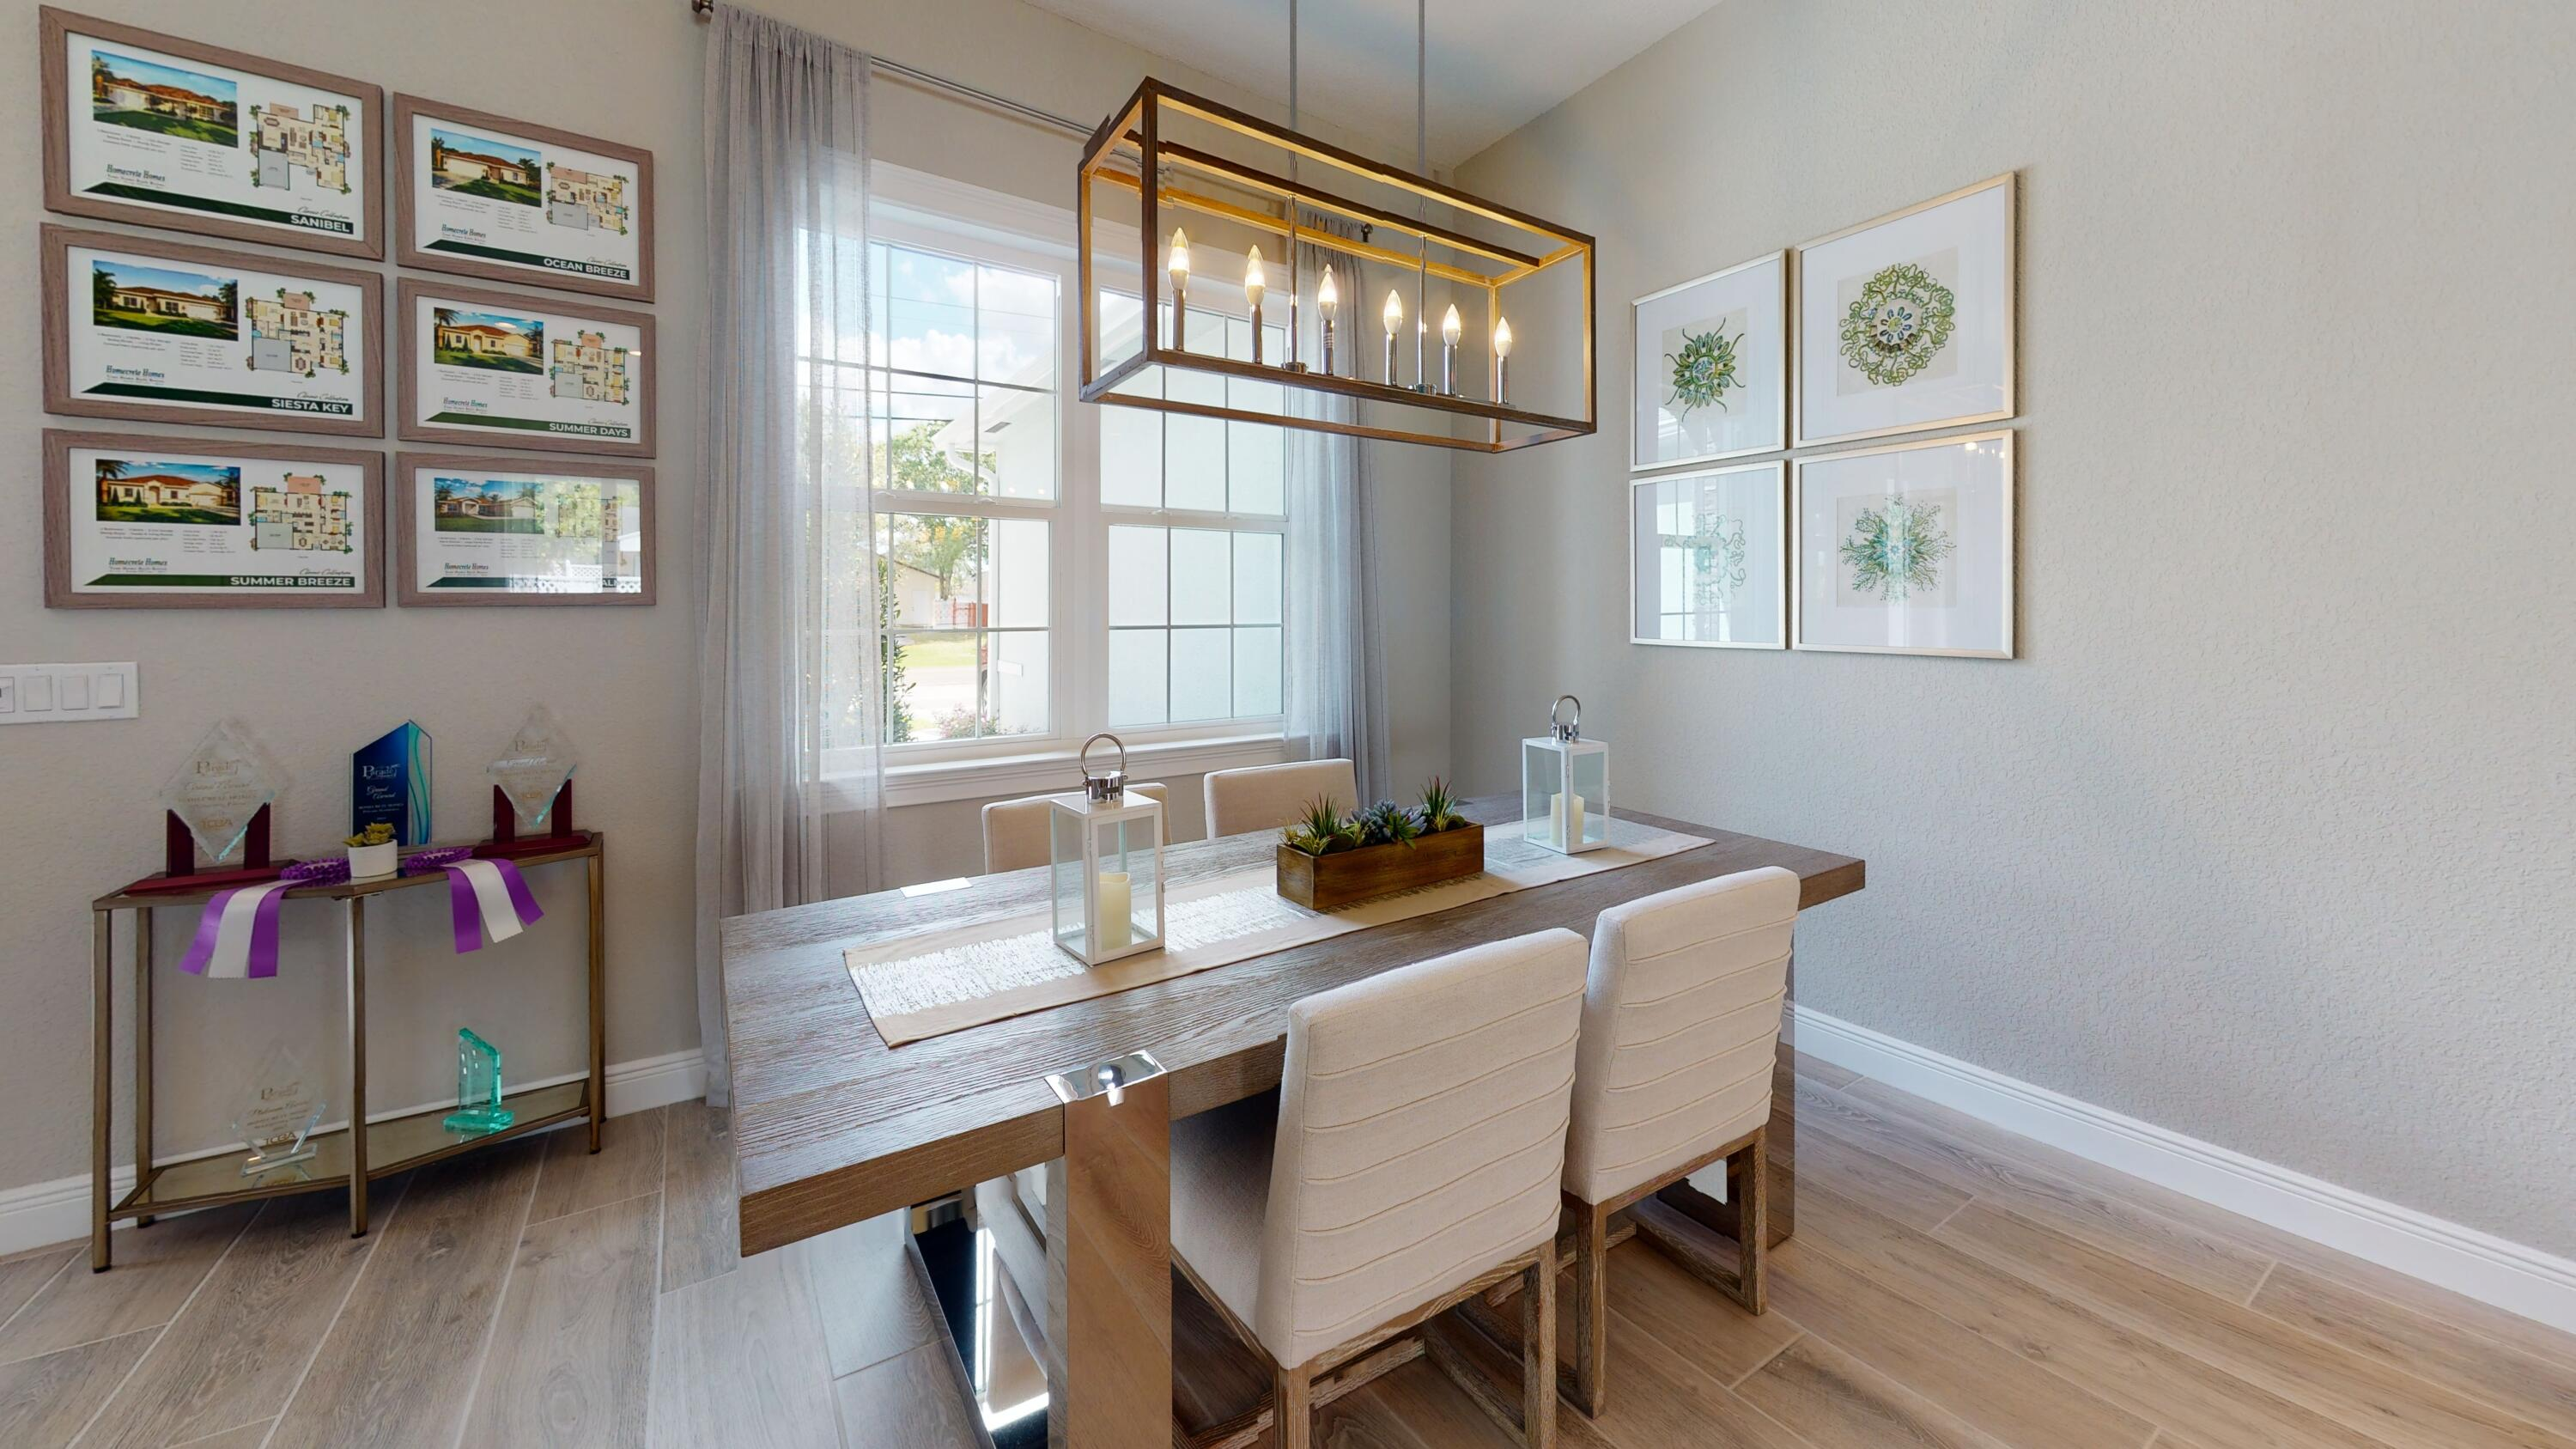 Breezy-Pines-Dining-Room